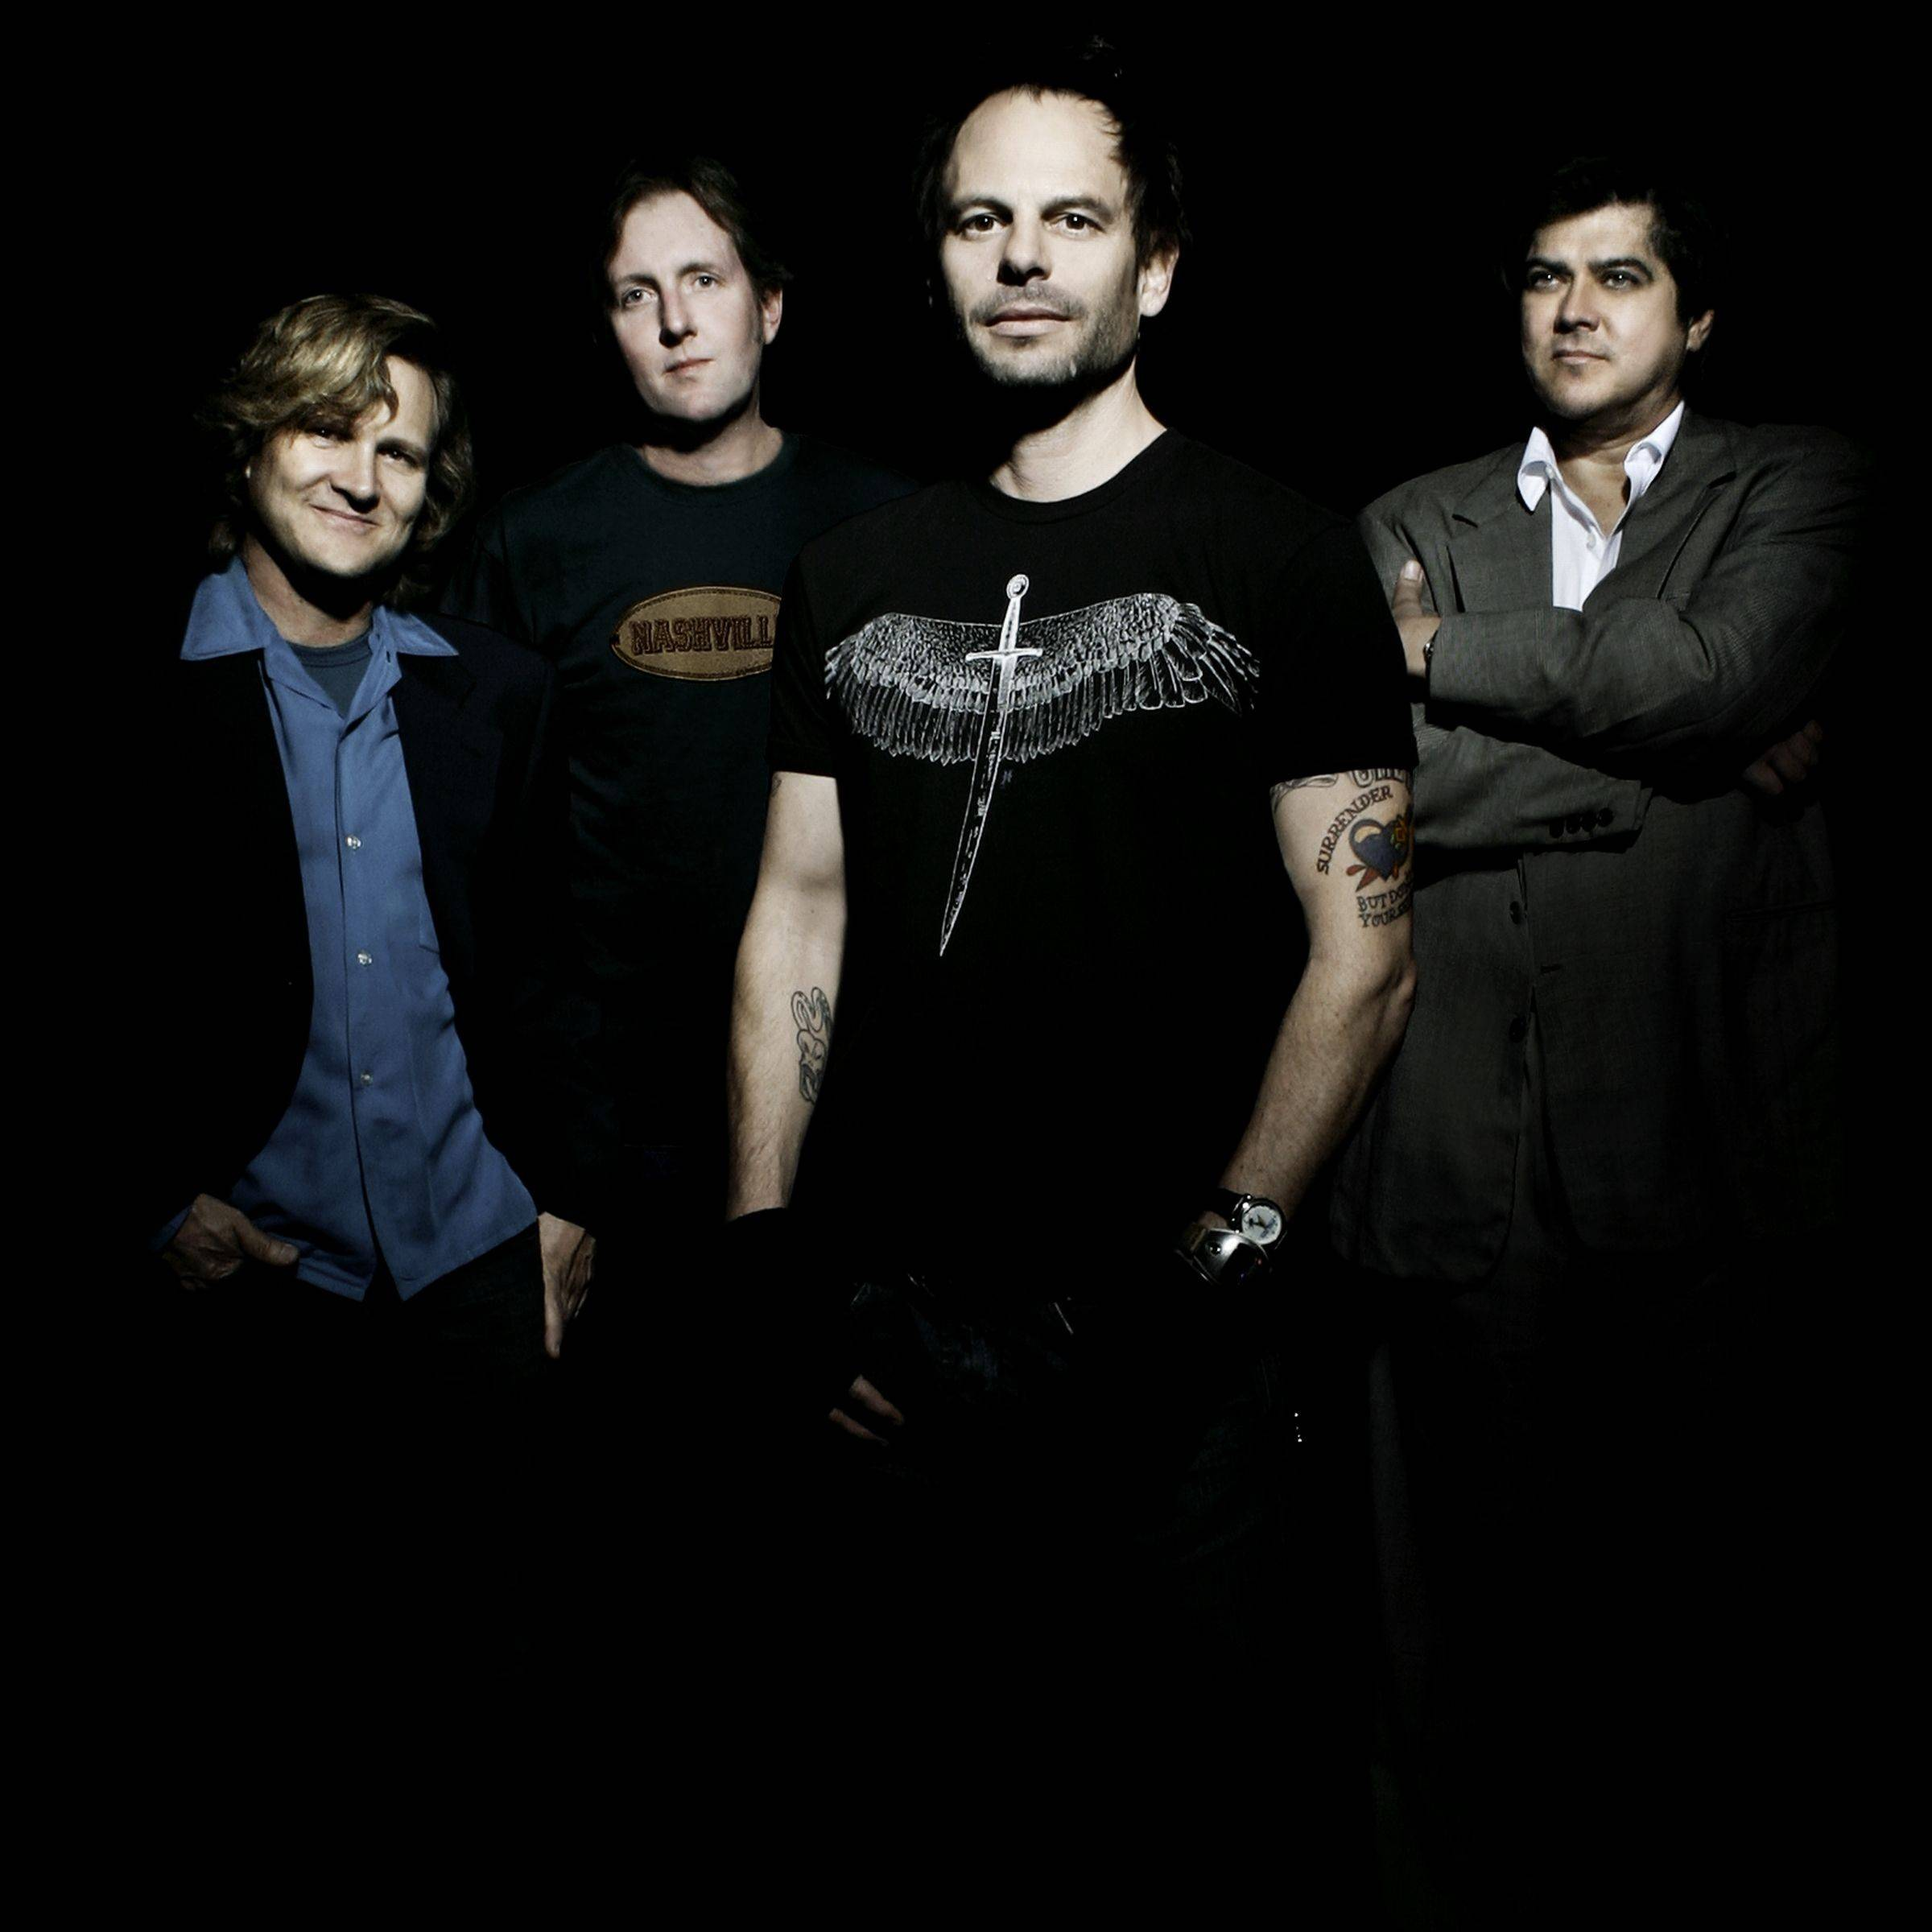 Alt-pop band the Gin Blossoms will be among the headliners Friday, July 4, at Frontier Days in Arlington Heights.